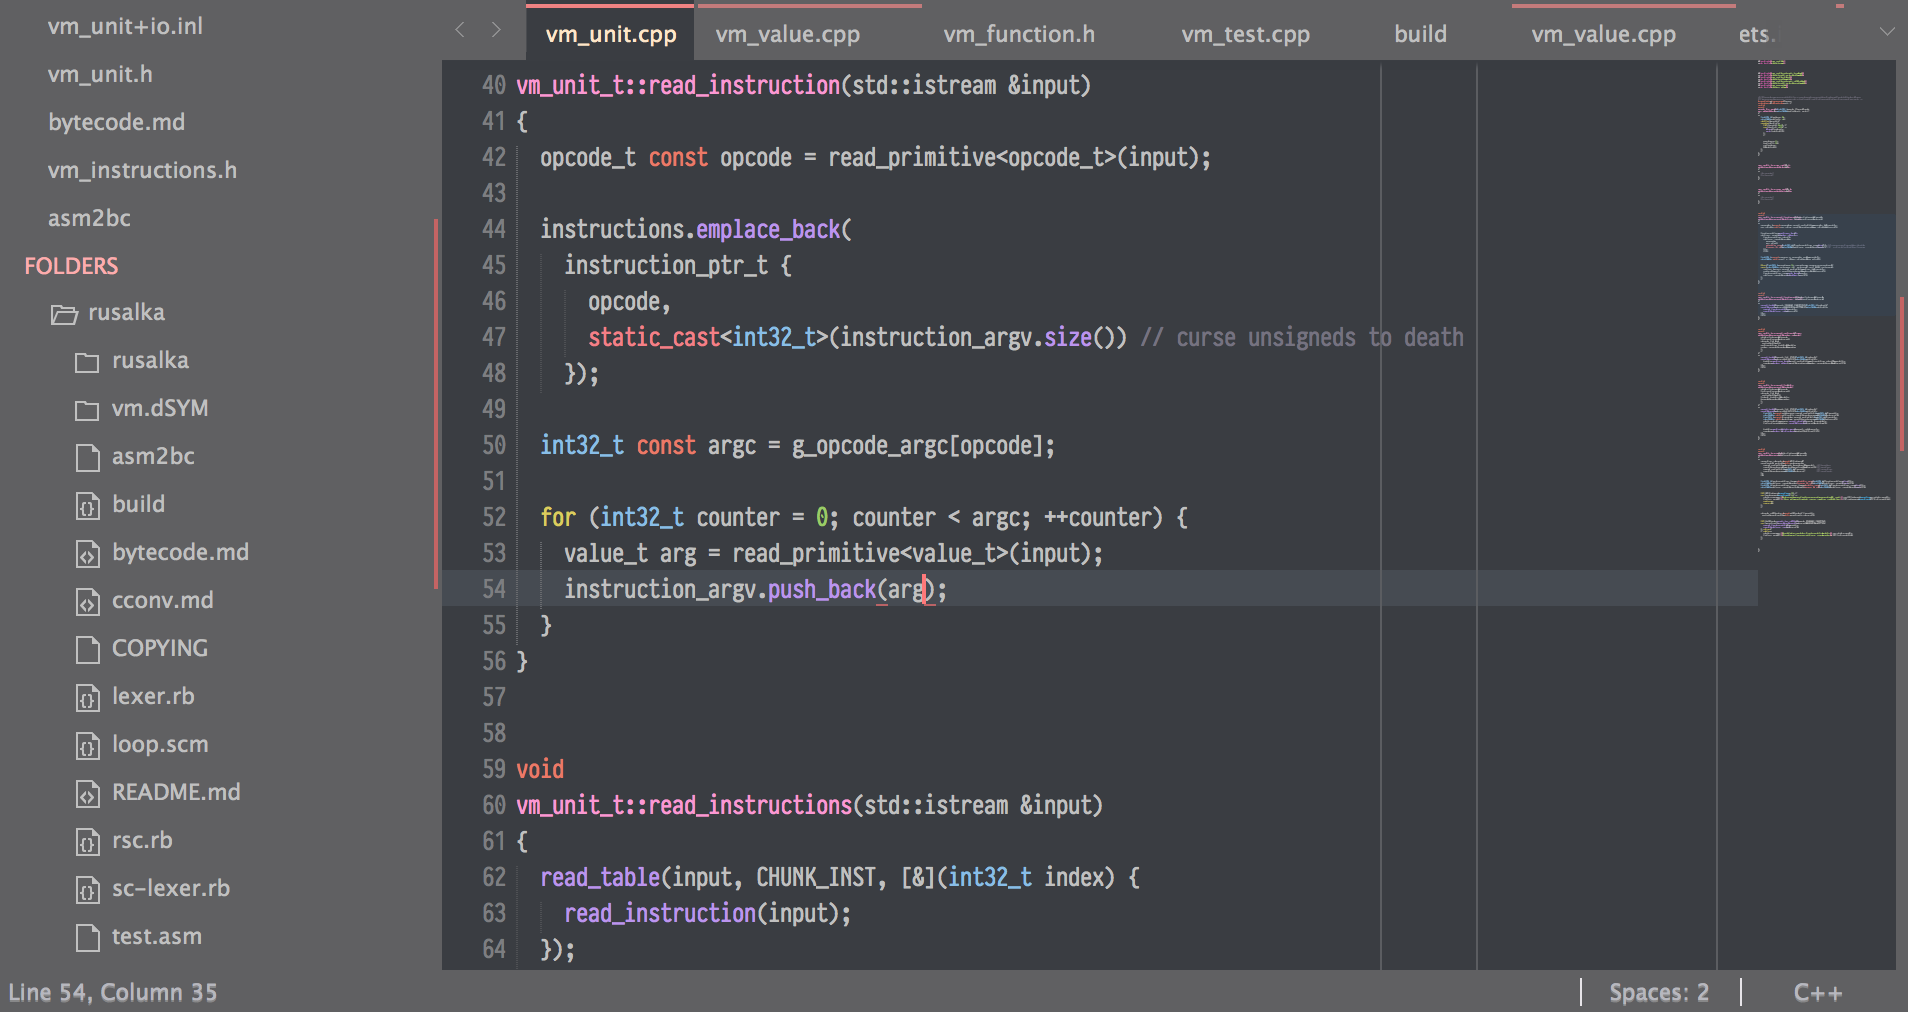 A screenshot of my Sublime Text 3 configuration